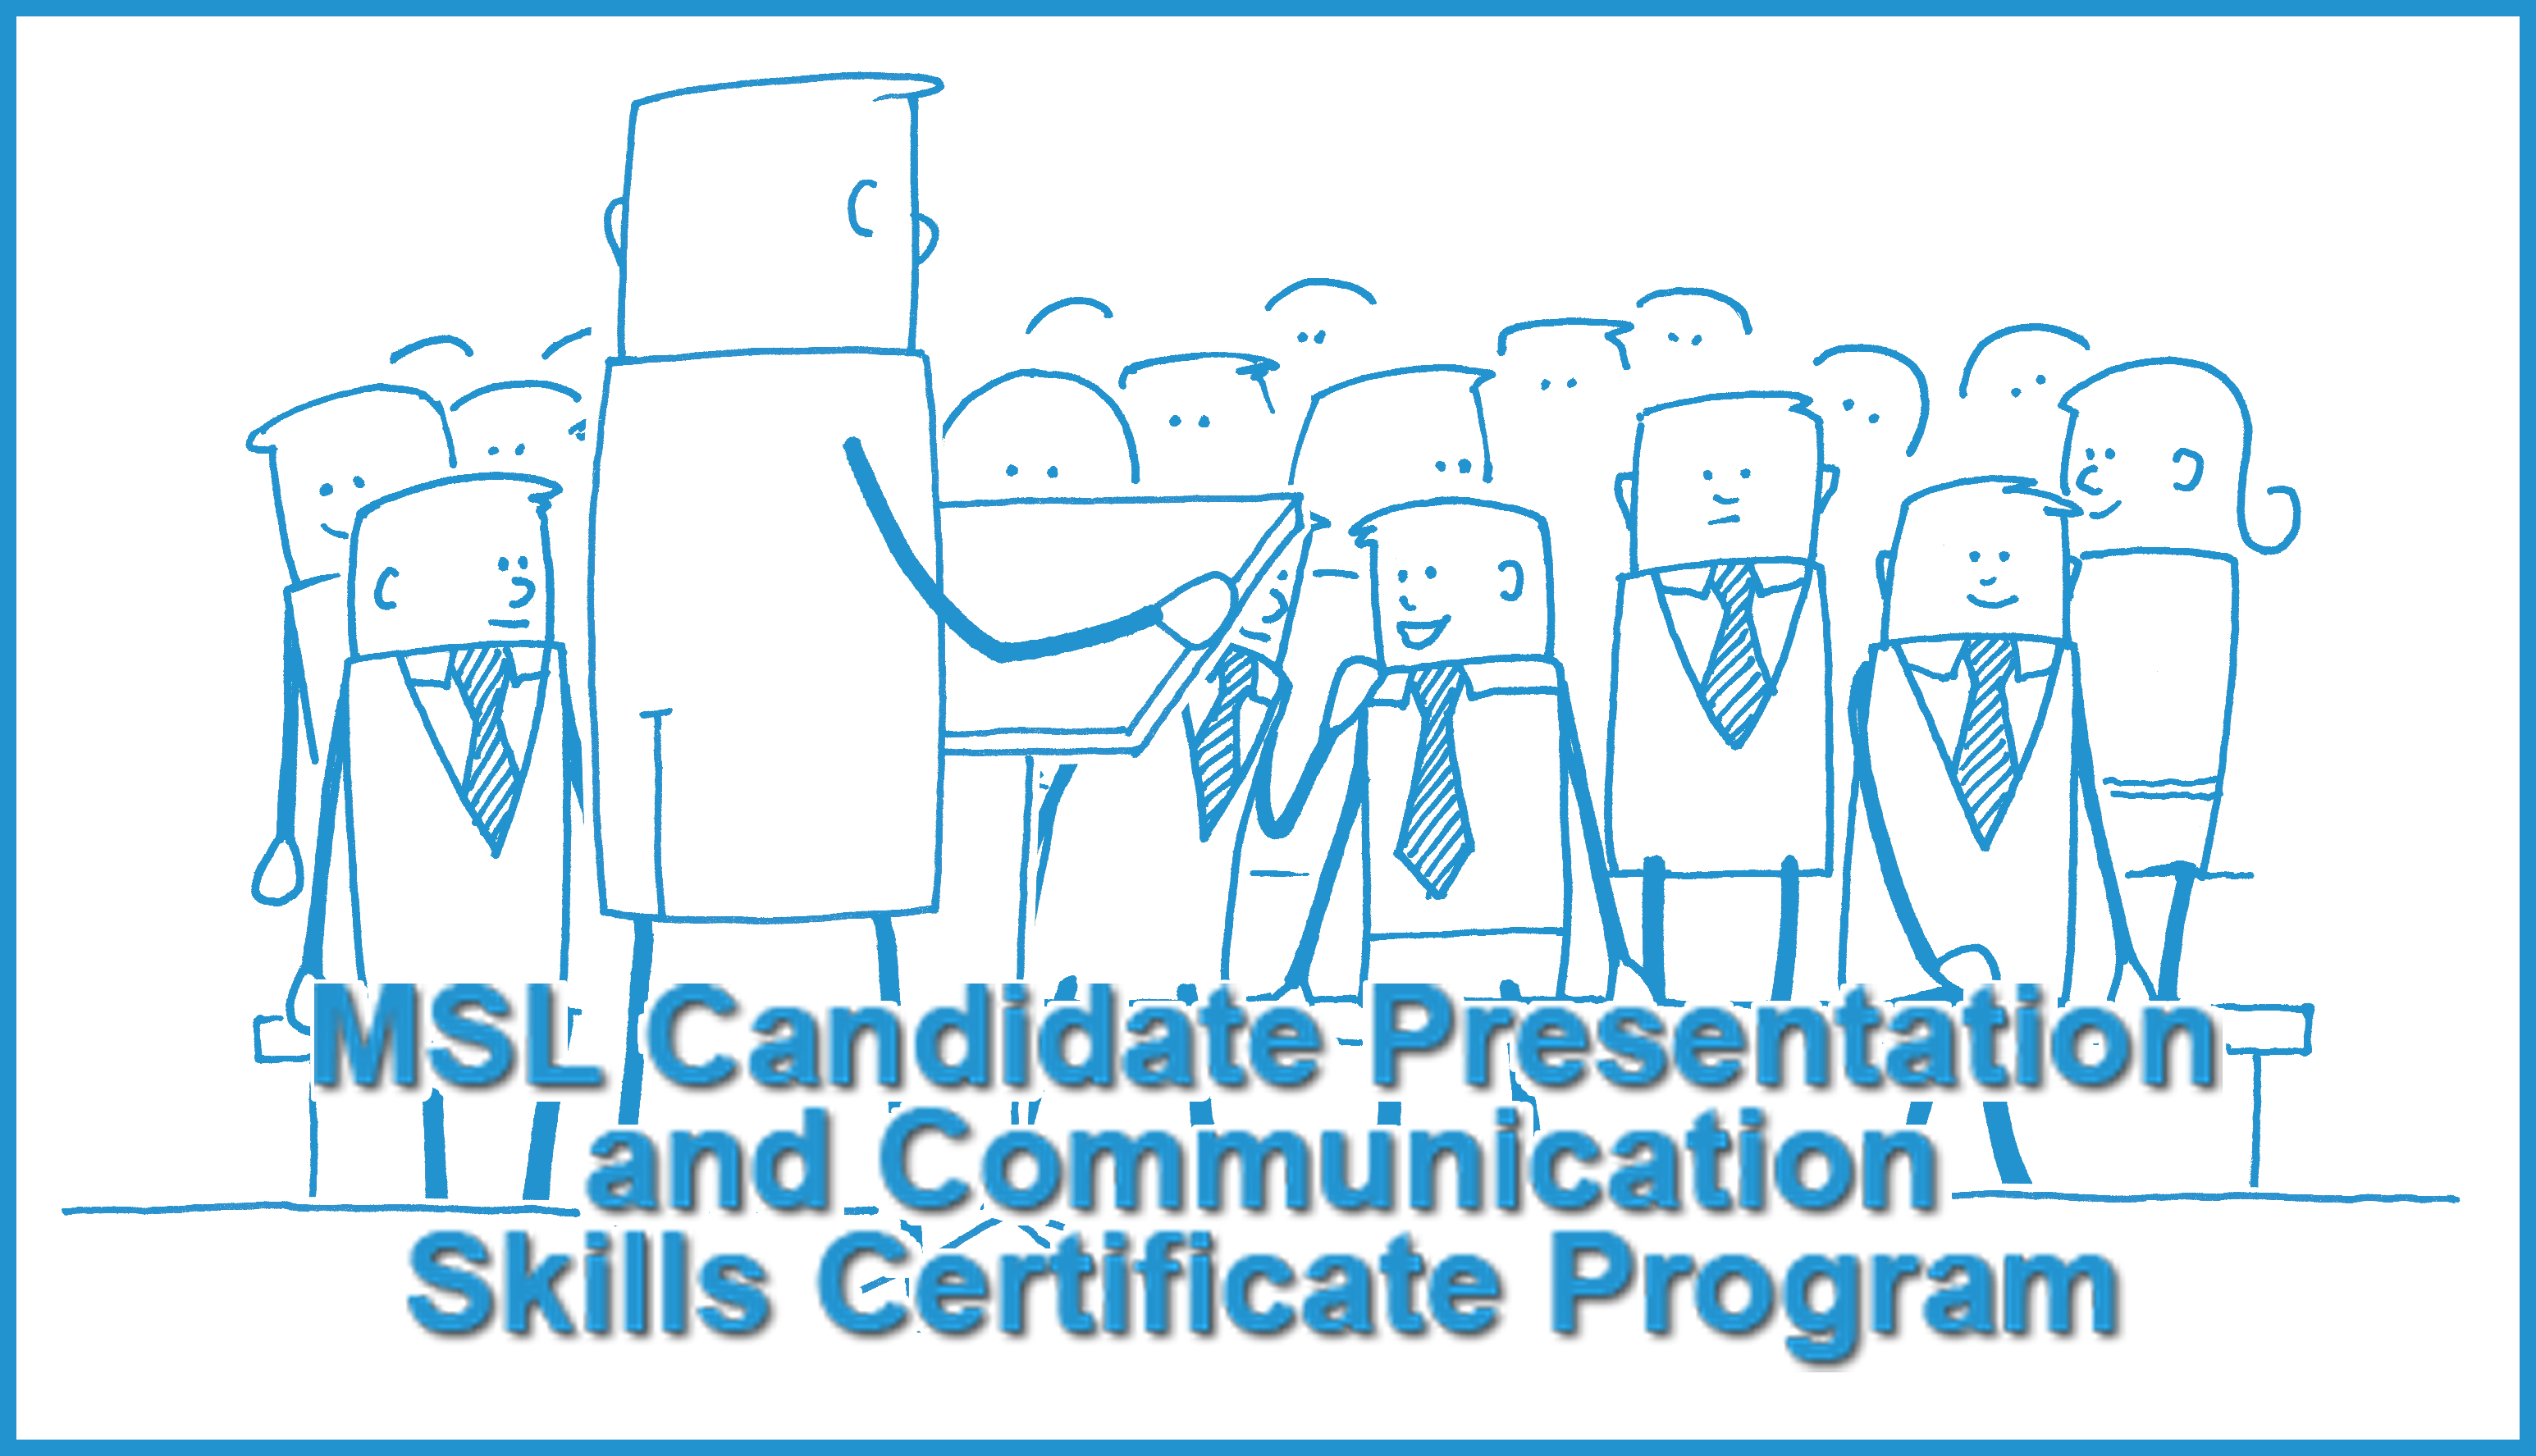 MSL Candicate Presentation and Communications Skills Certificate Program